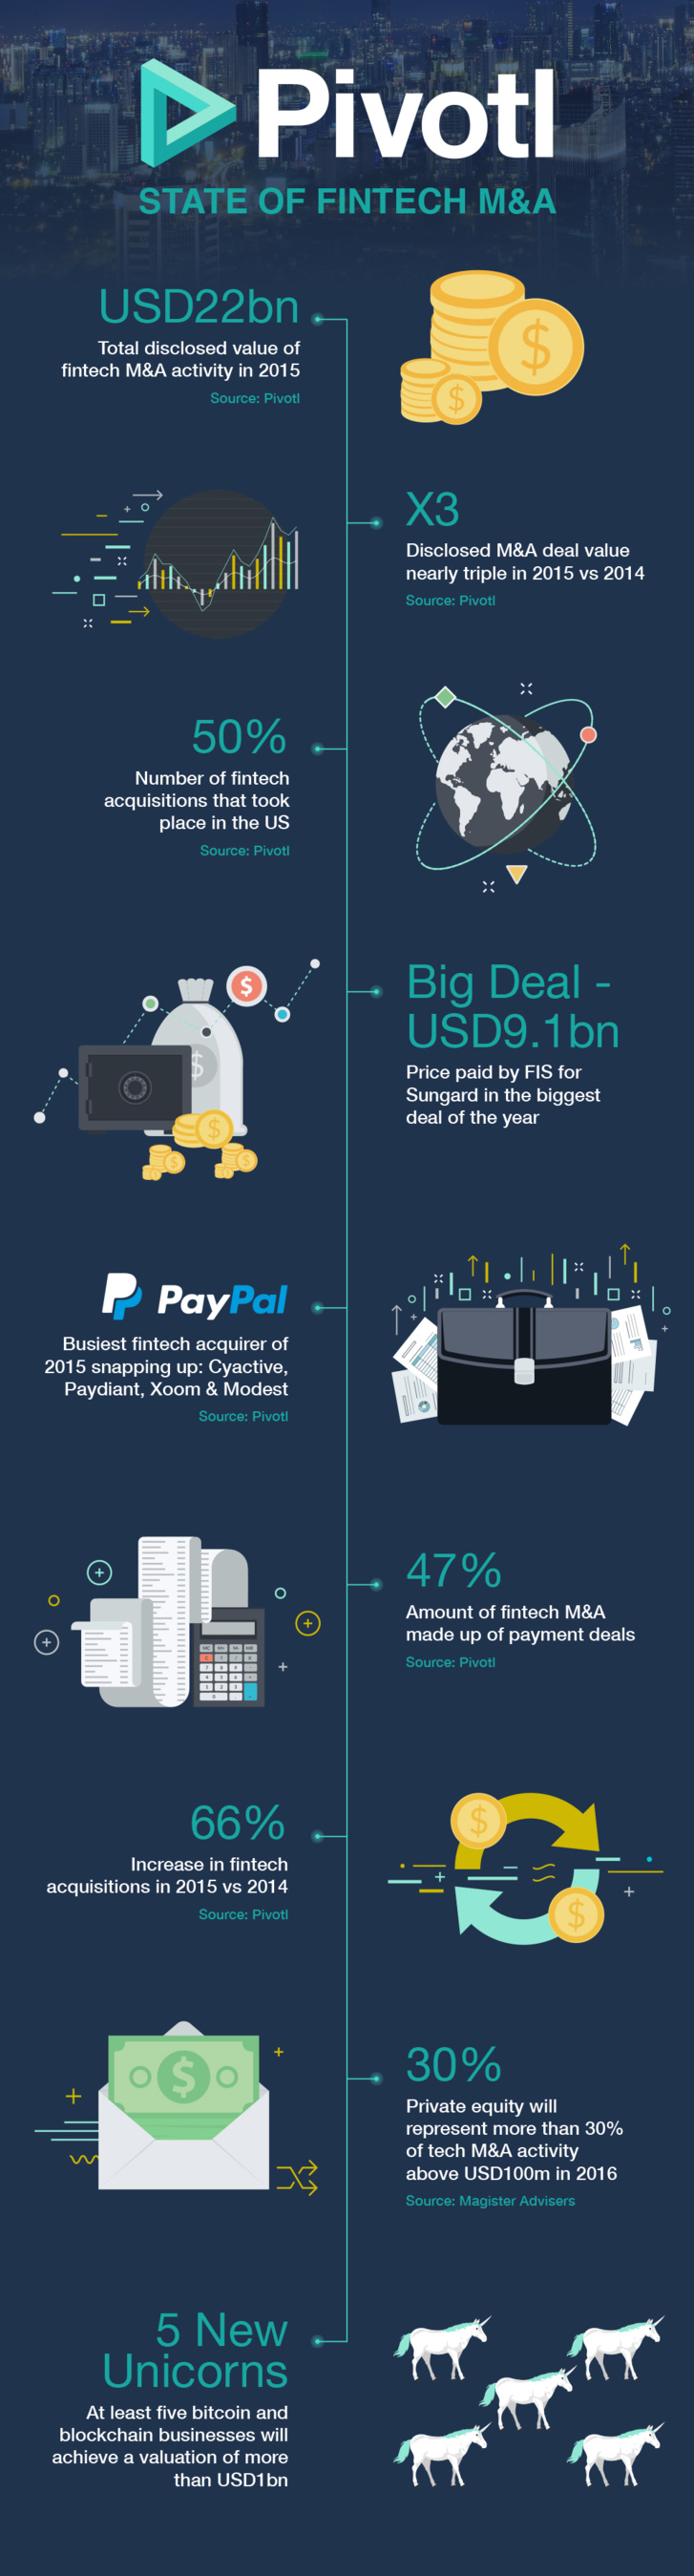 Fintech M&A Infographic - Payments Frenzy In 2016